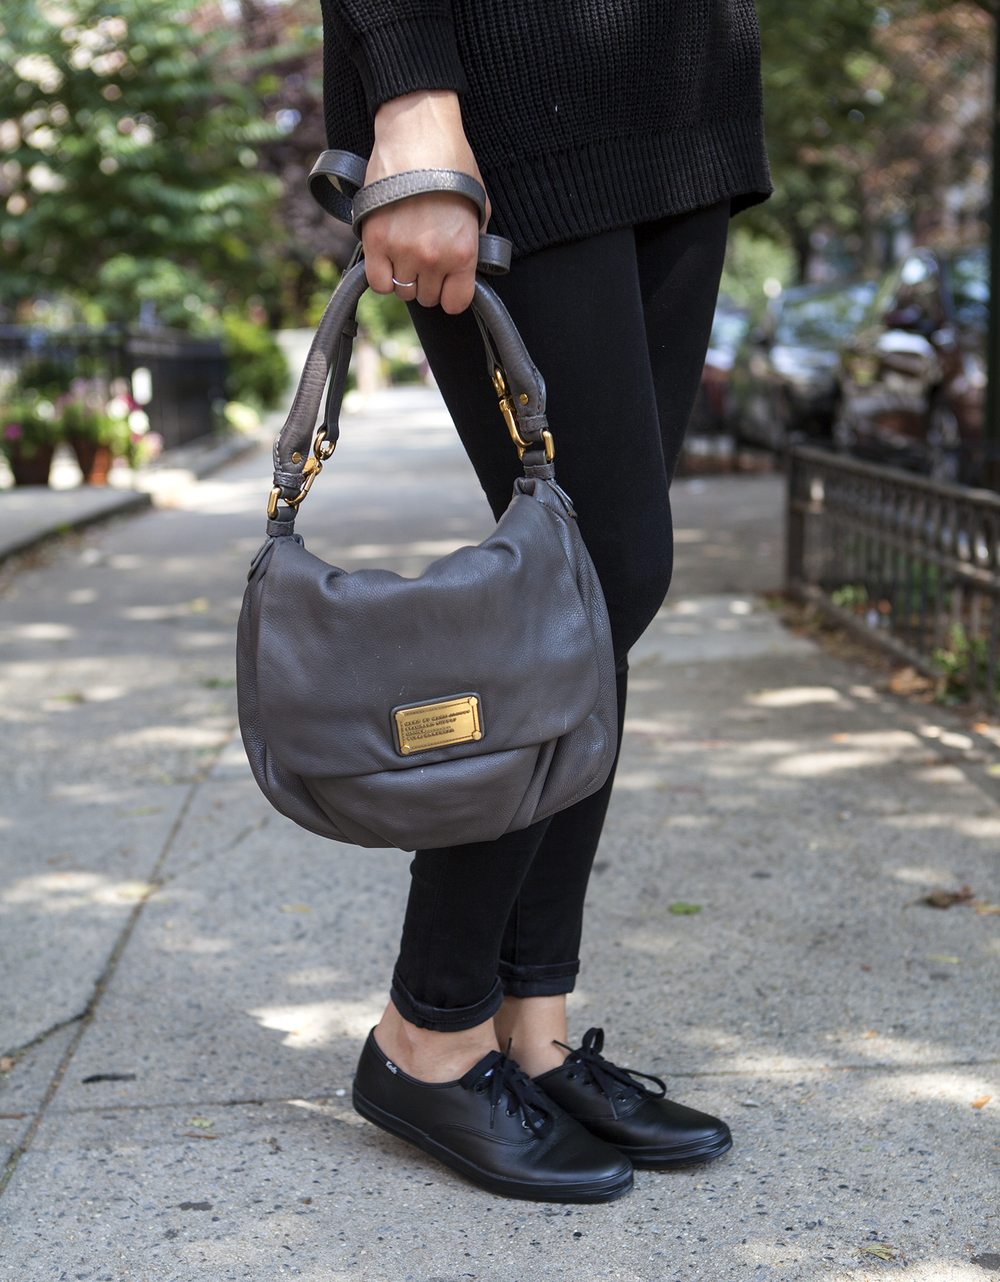 marc_jacobs_gray_grey_bag.jpg